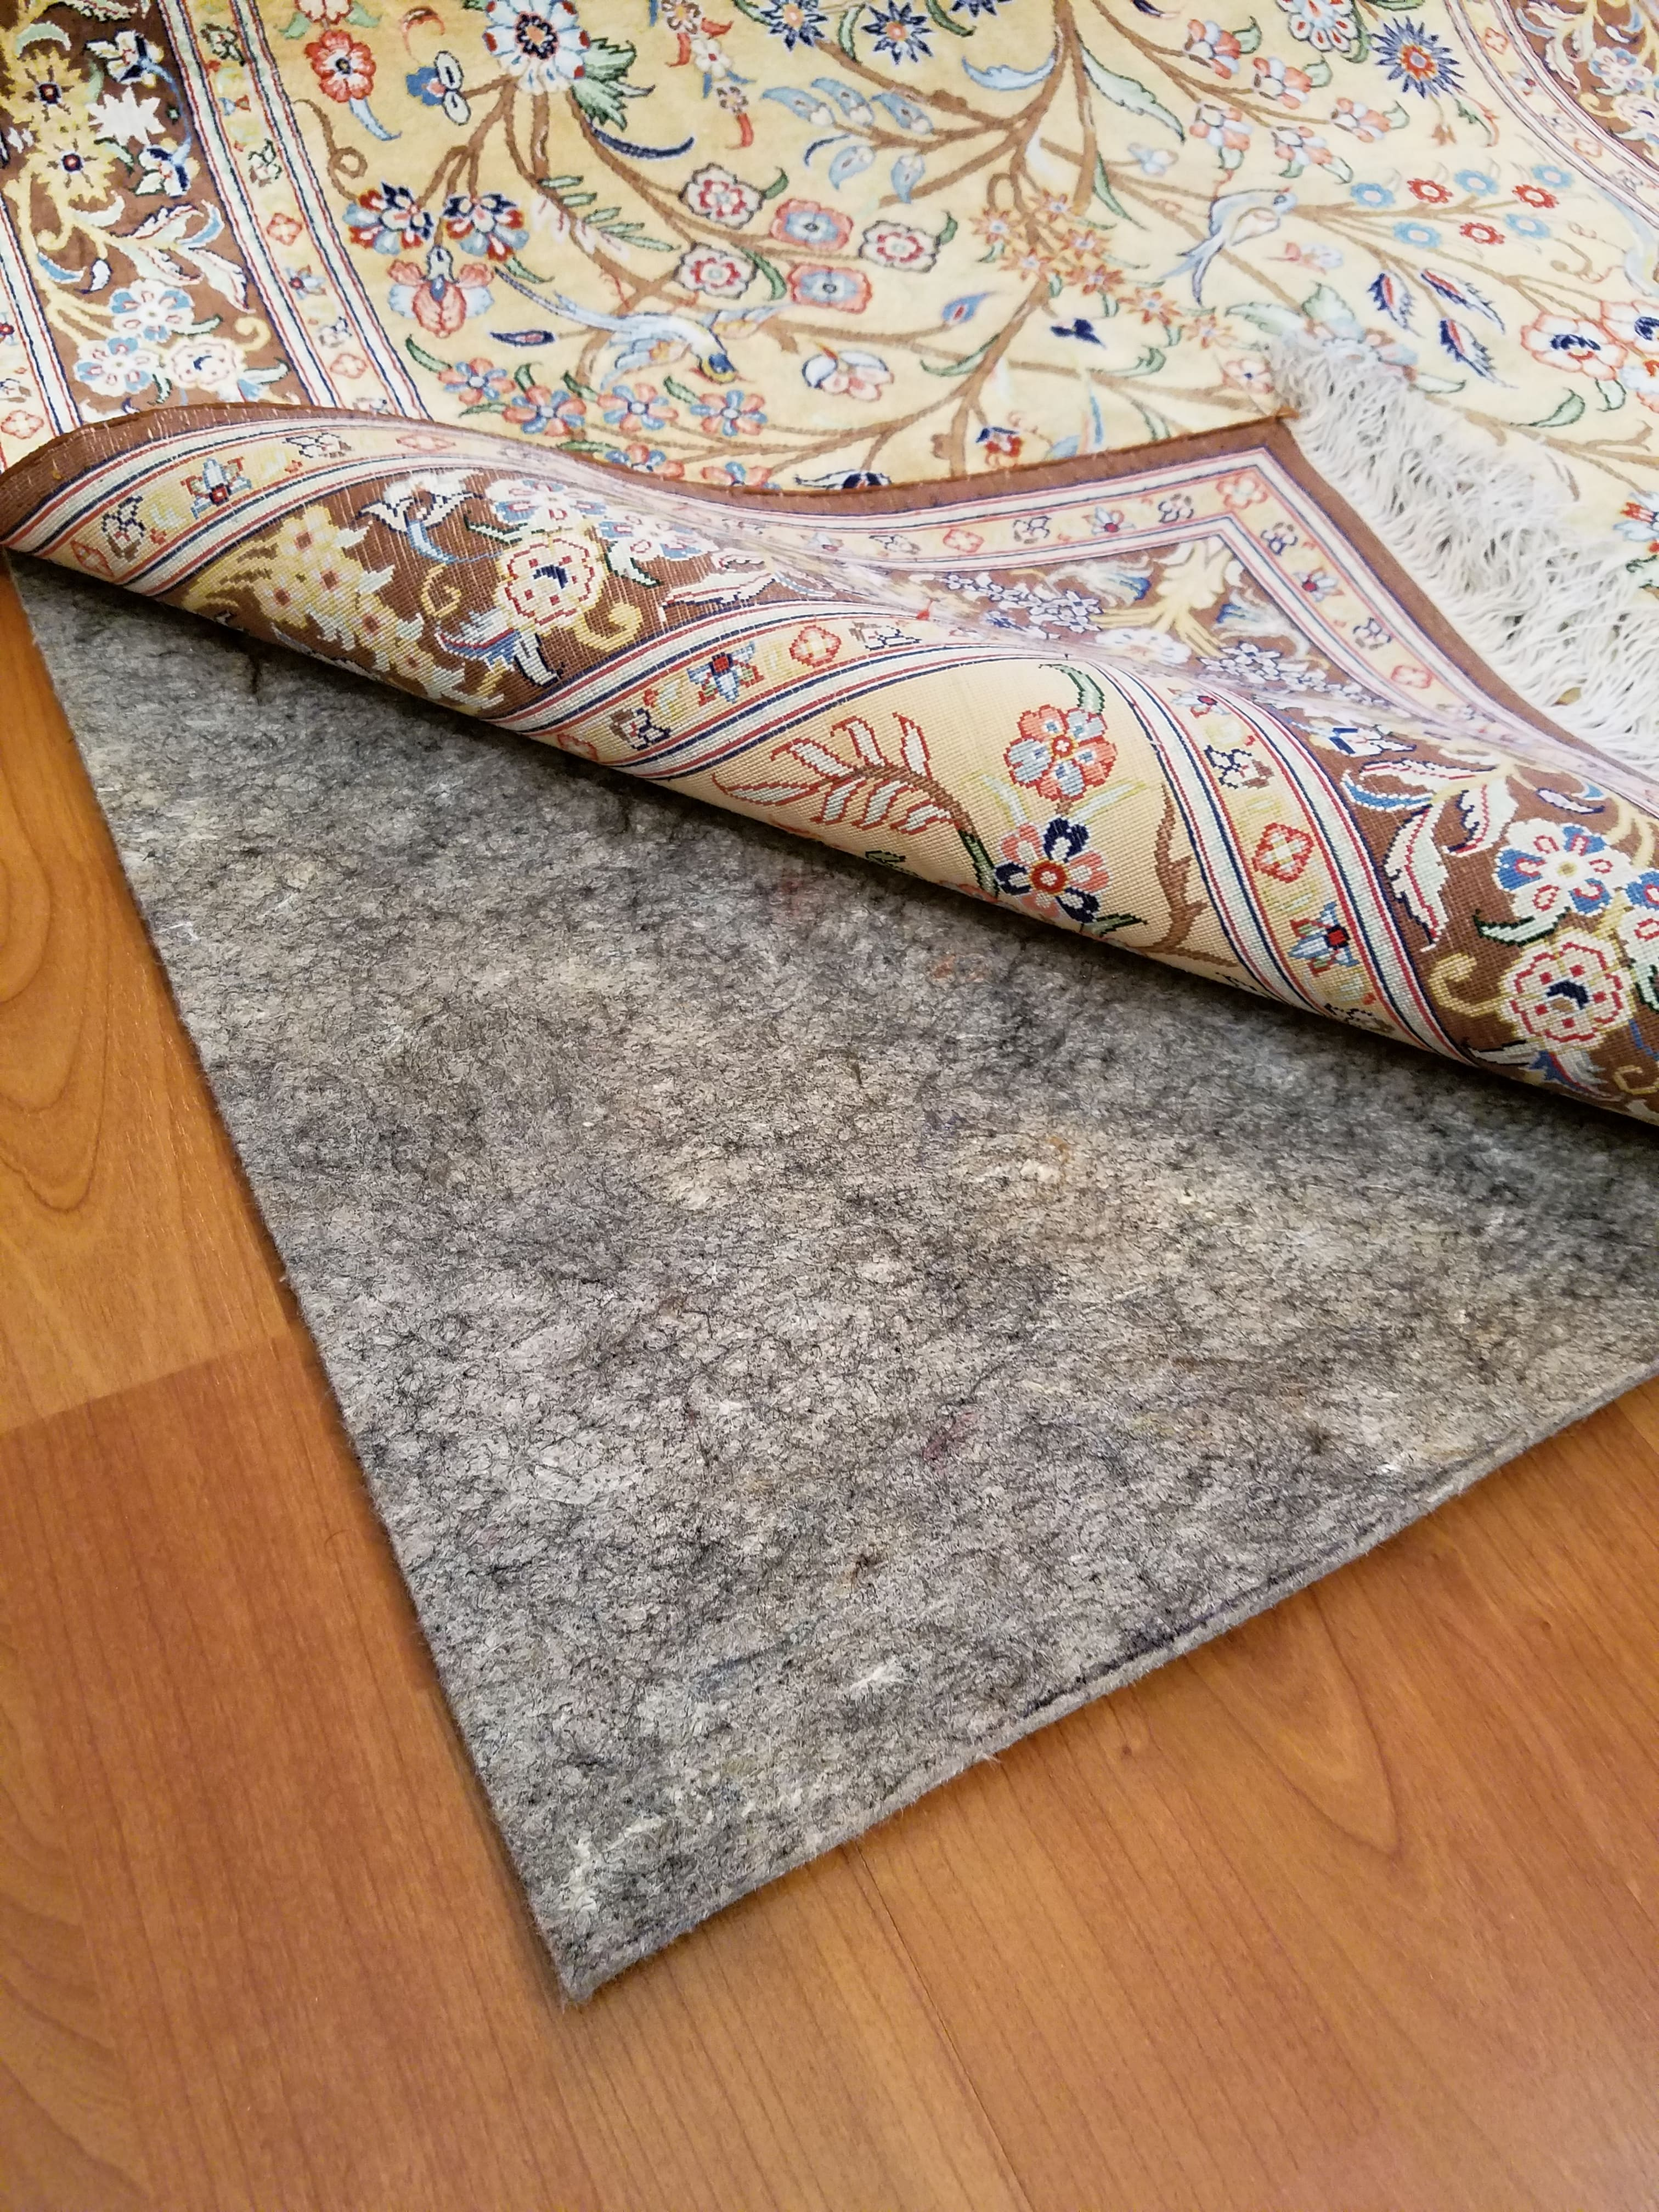 Our Super Deluxe Rug Pads Are Some Of The Longest Lasting, Most Durable  Products On The Market. We Use Natural Rubber Instead Of Inferior Synthetic  Latex.